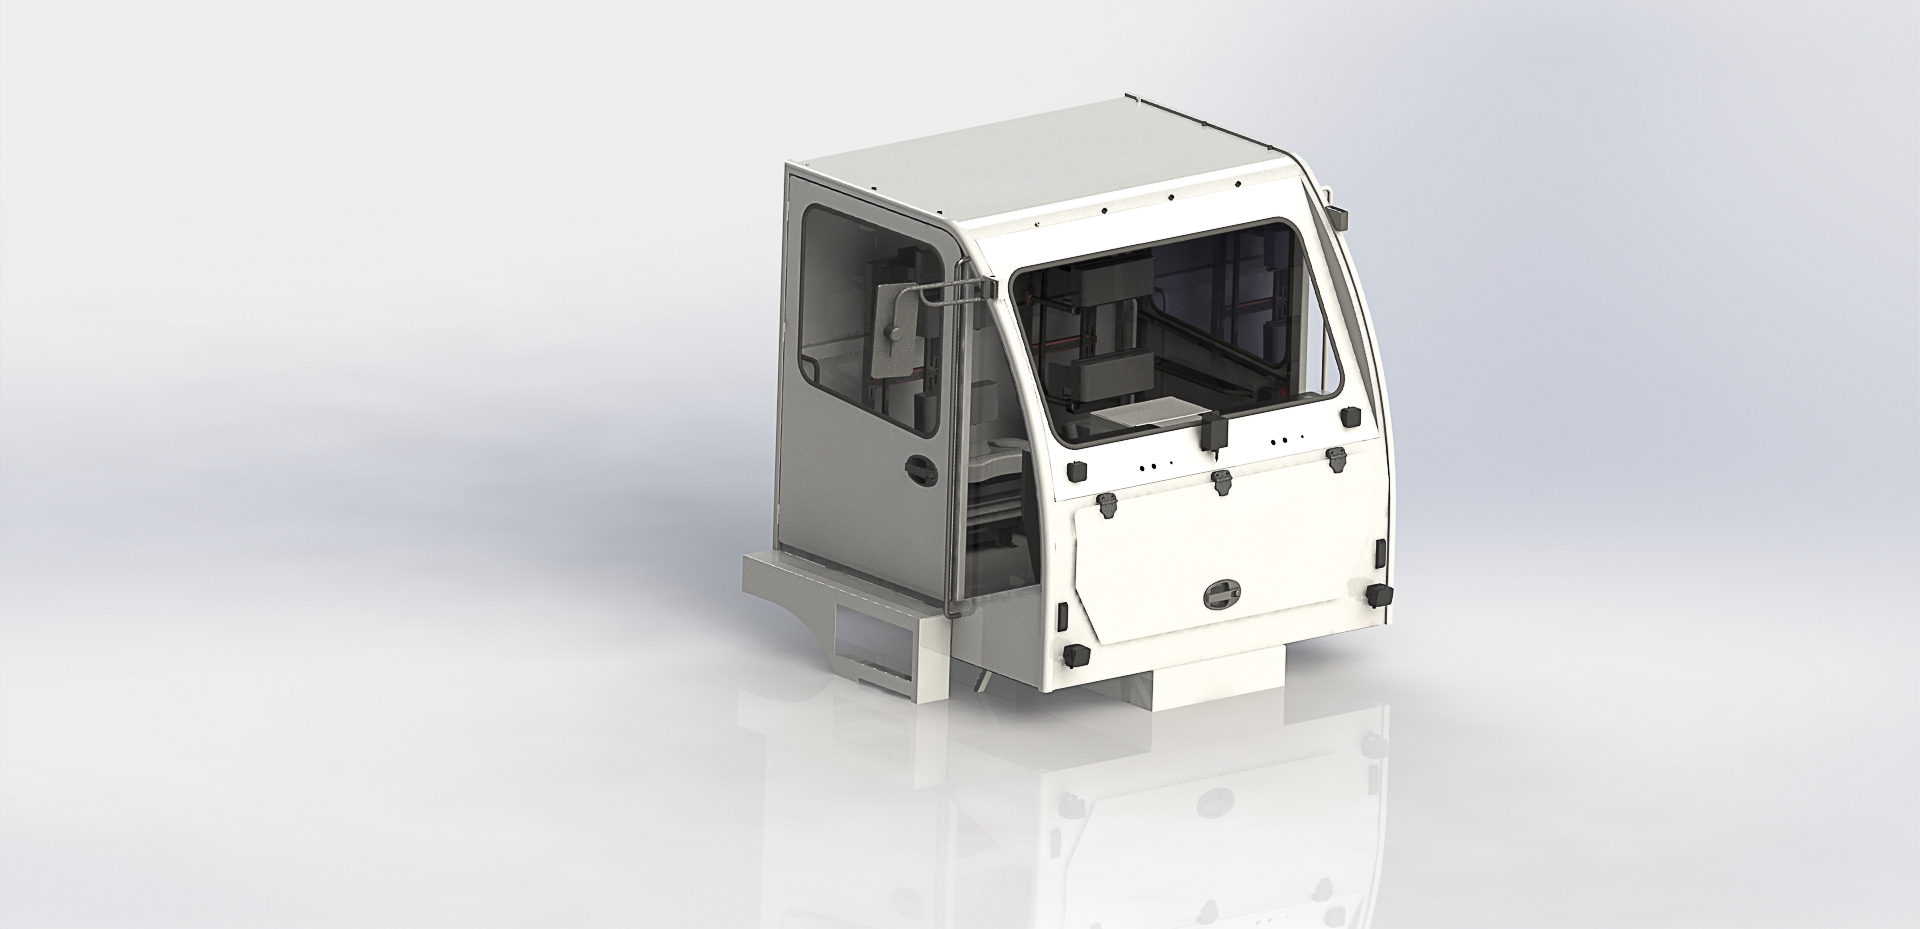 Pressurface cabin for tunnel intervention vehicle